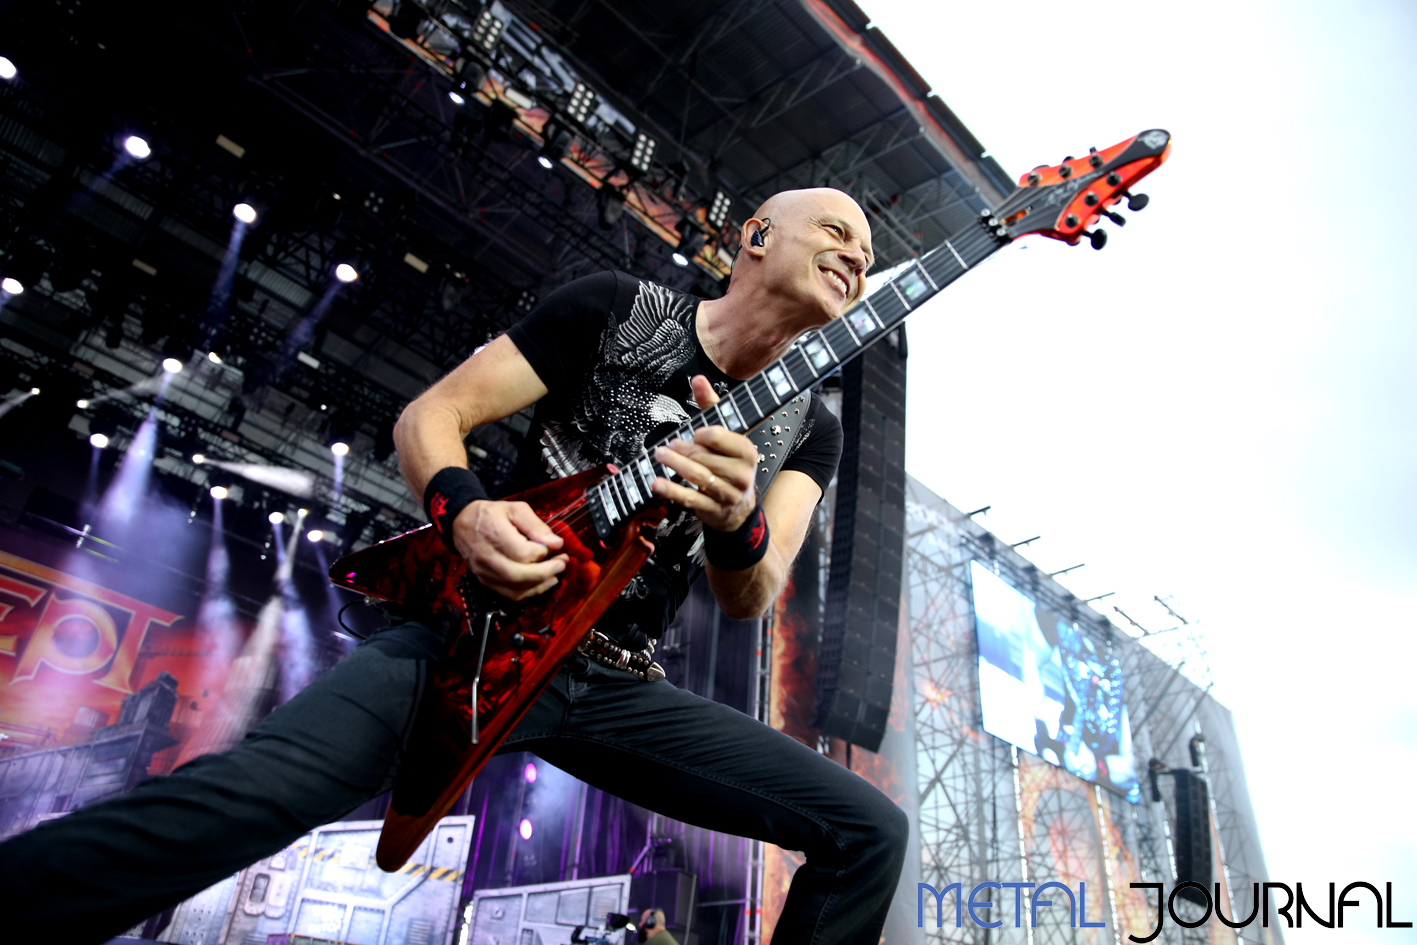 accept rock fest 18 - metal journal pic 1